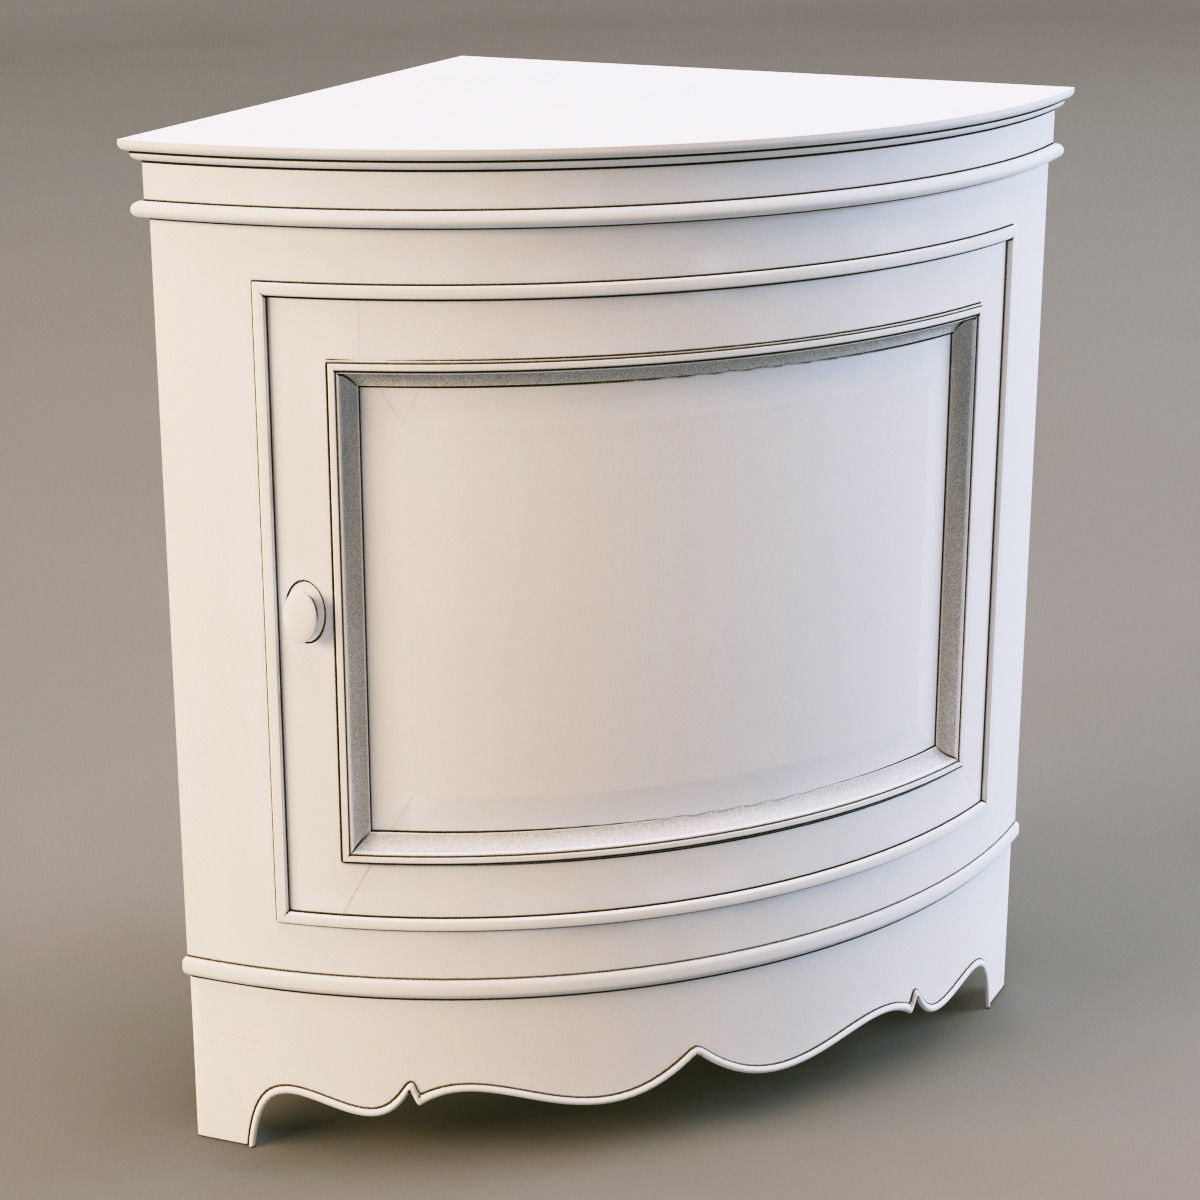 country corner pbb2 nightstand 3d model max obj 3ds